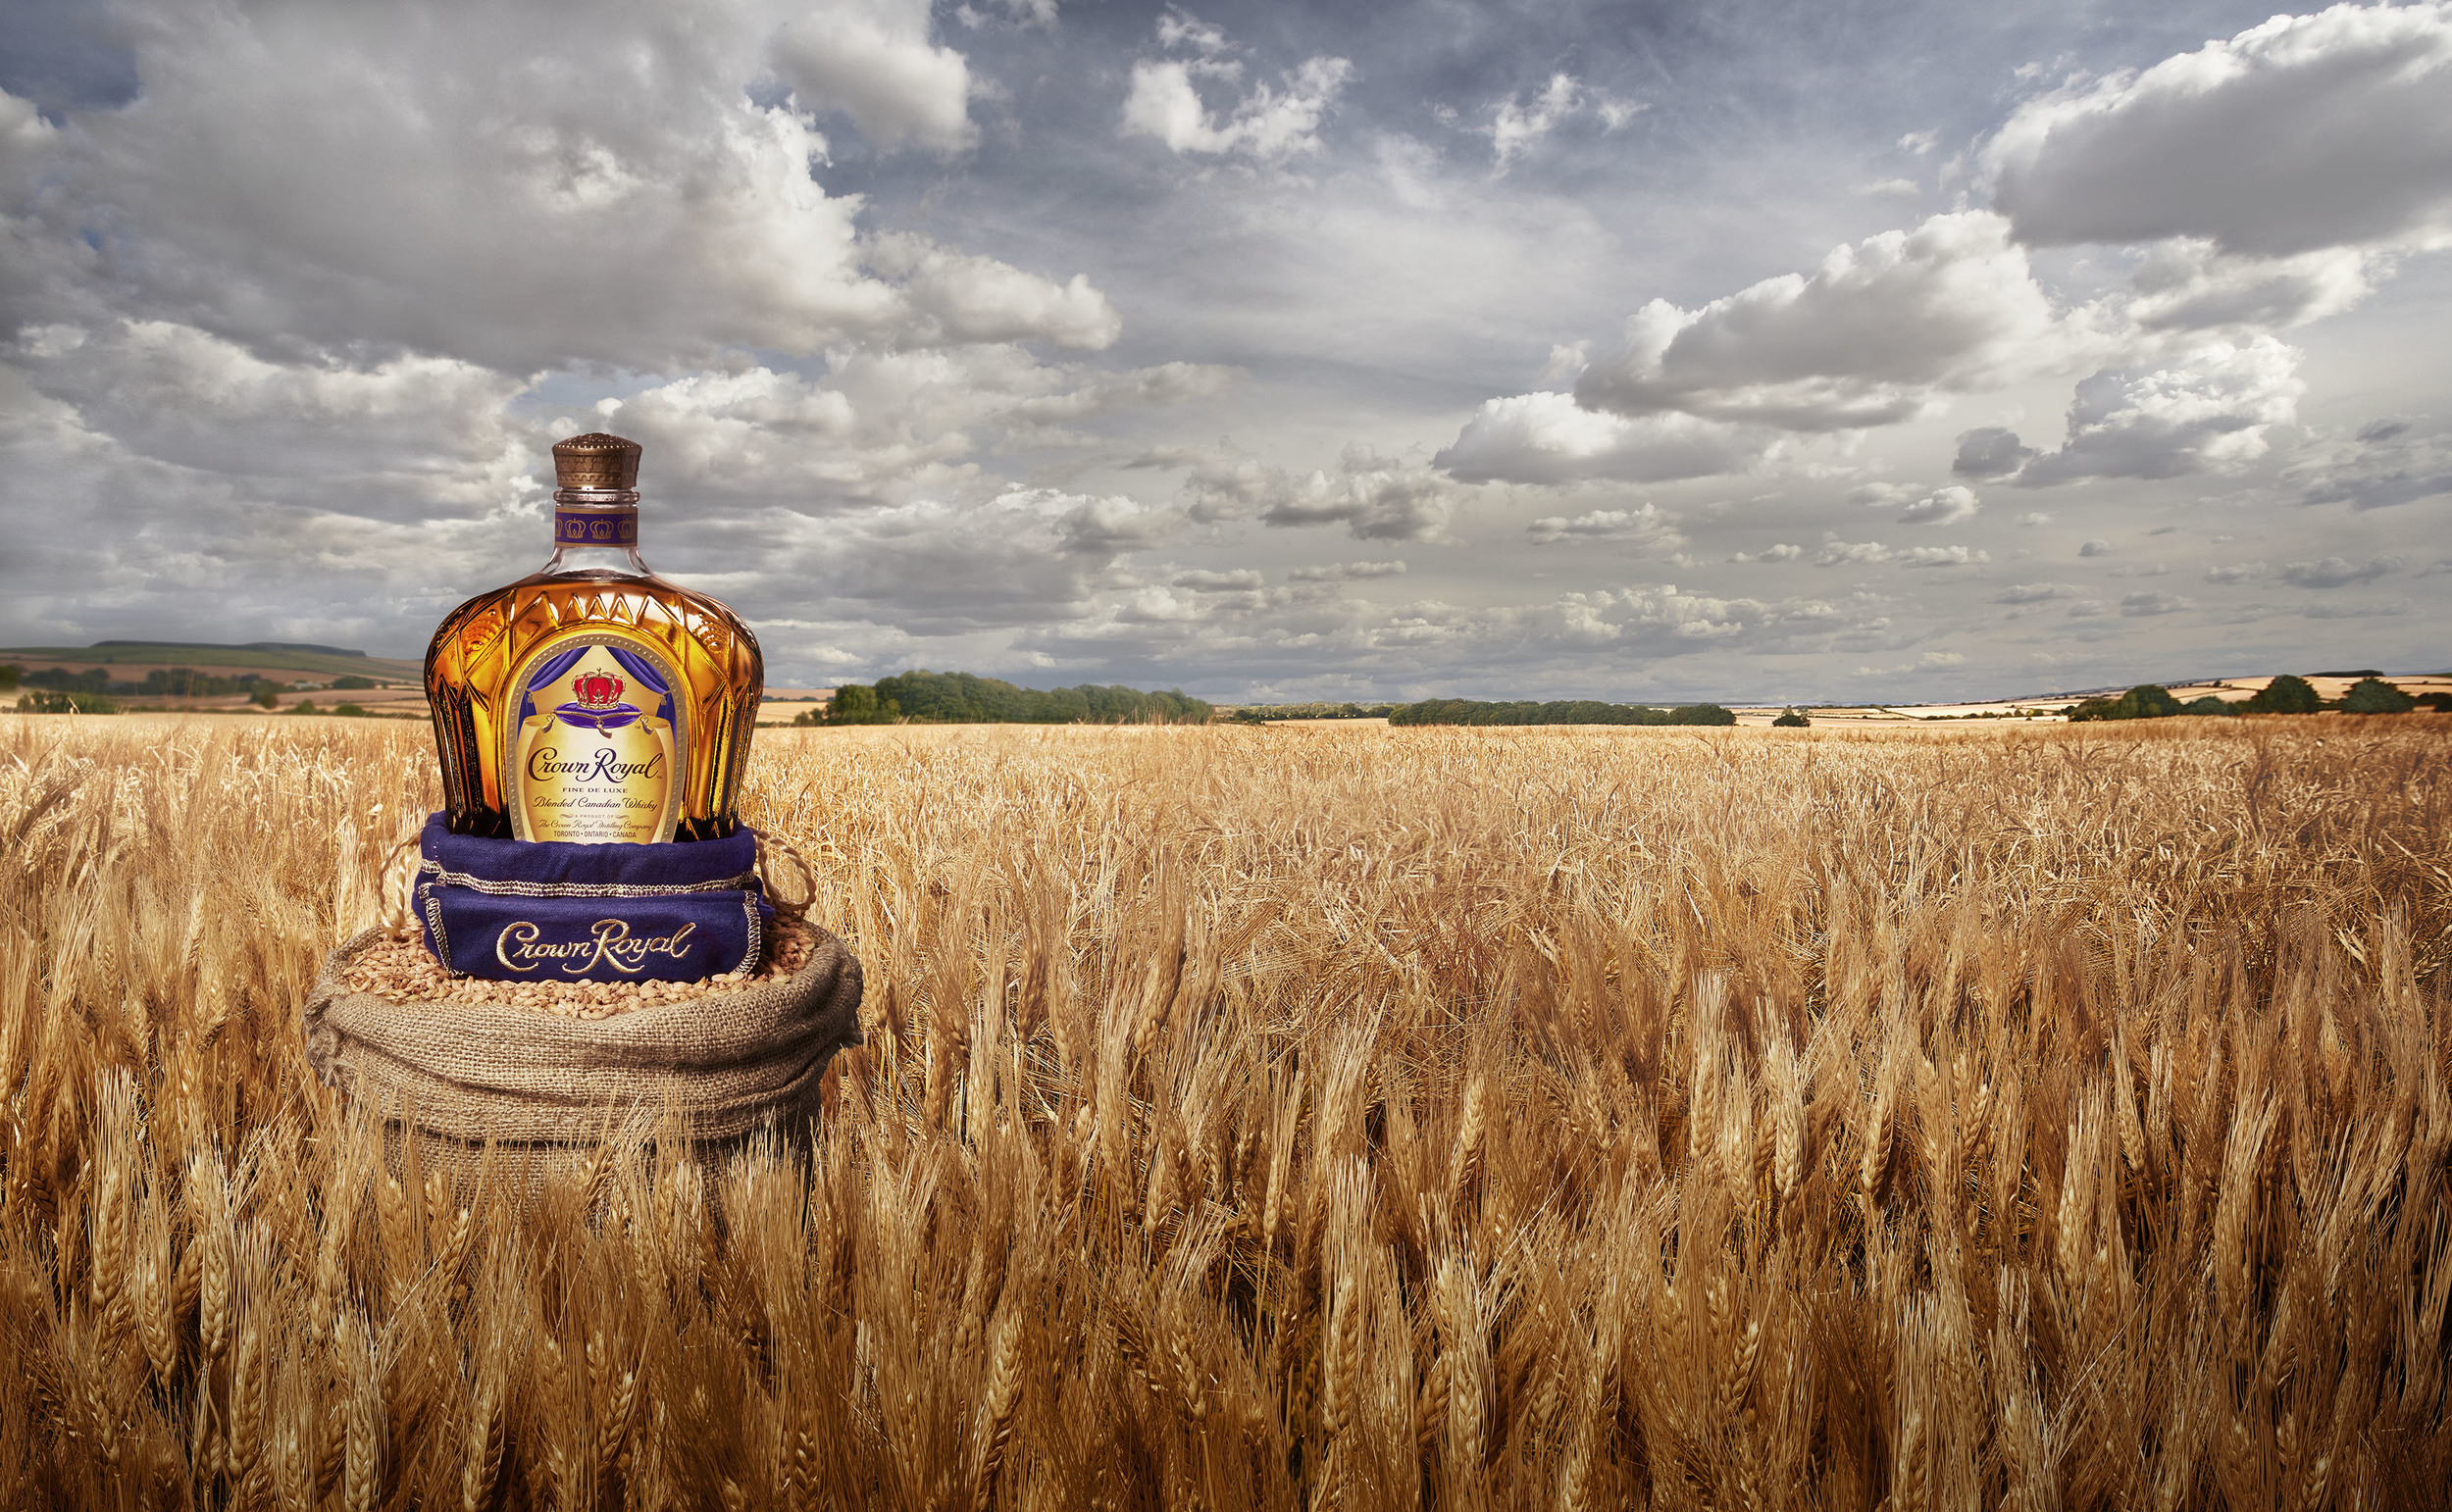 Client • Crown Royal  Agency • Grey  Creative Director • Stu Mair  Art Director • Ryan Hoelting / Han Lin  Photography •Chris Gordaneer   Retouching and Compositing • Brad Pickard